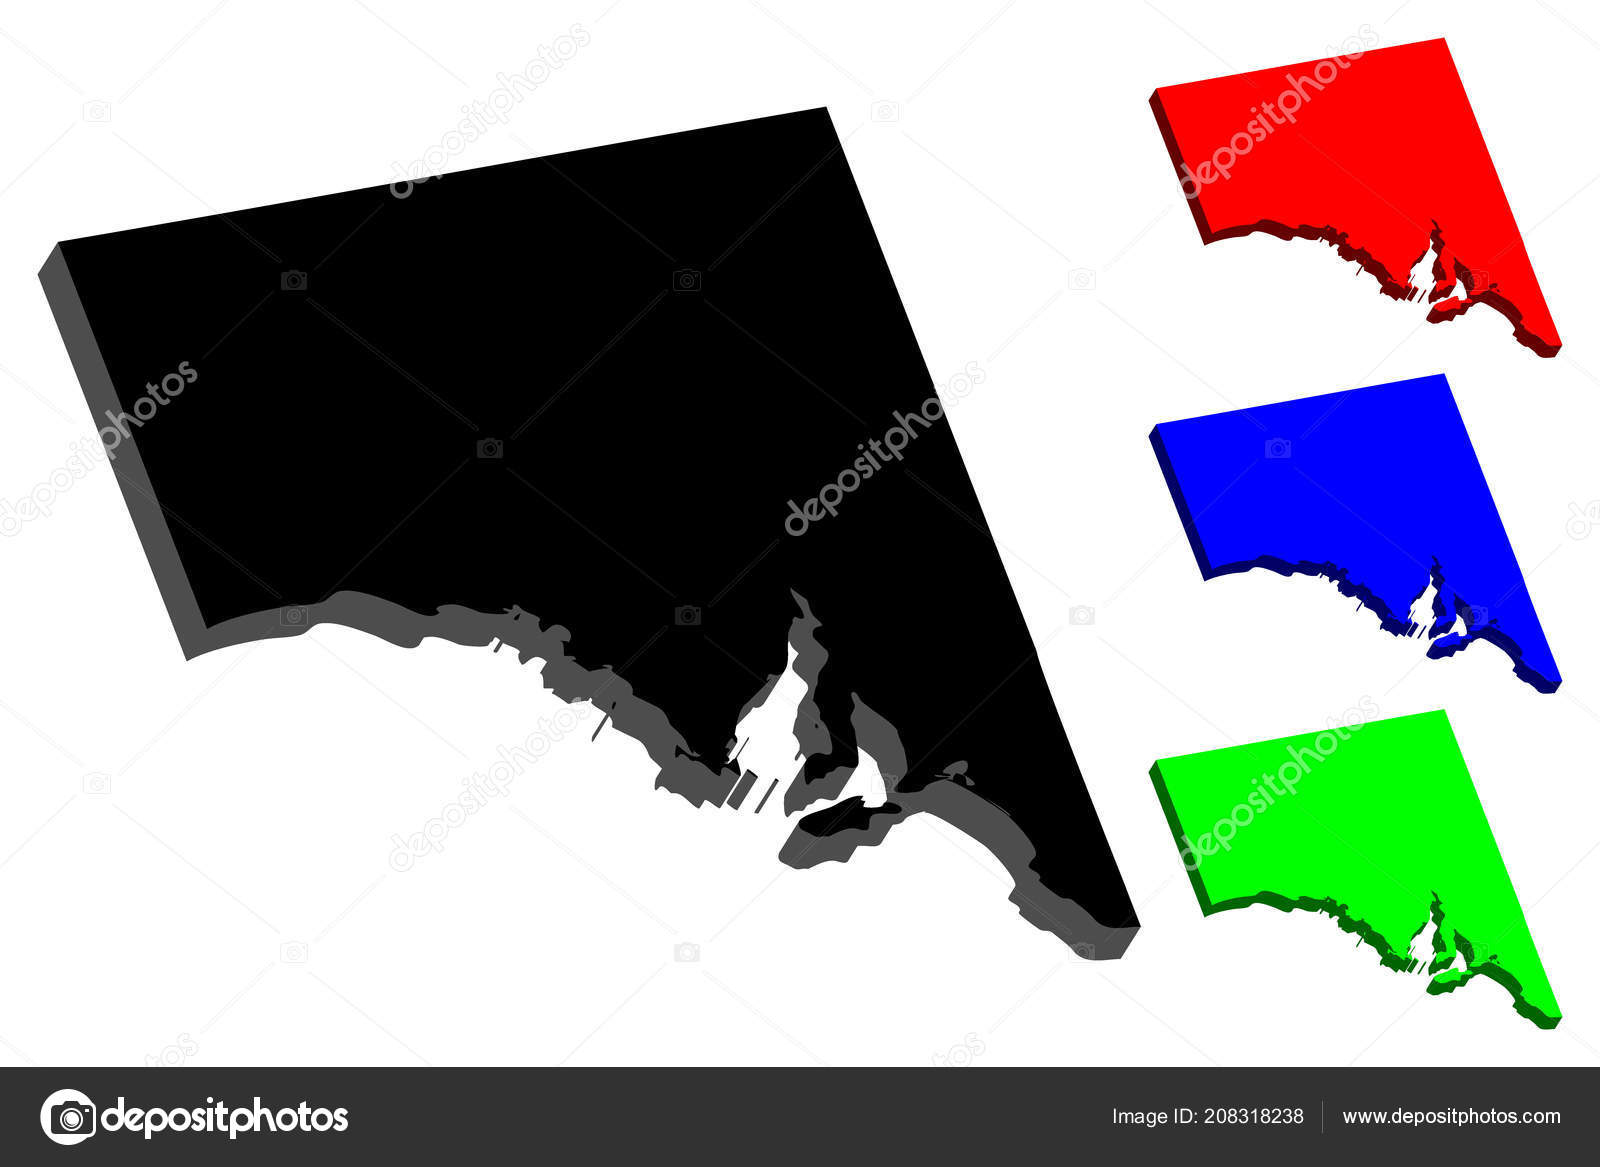 Australia Map Vector With States.Map South Australia Australian States Territories Black Red Blue